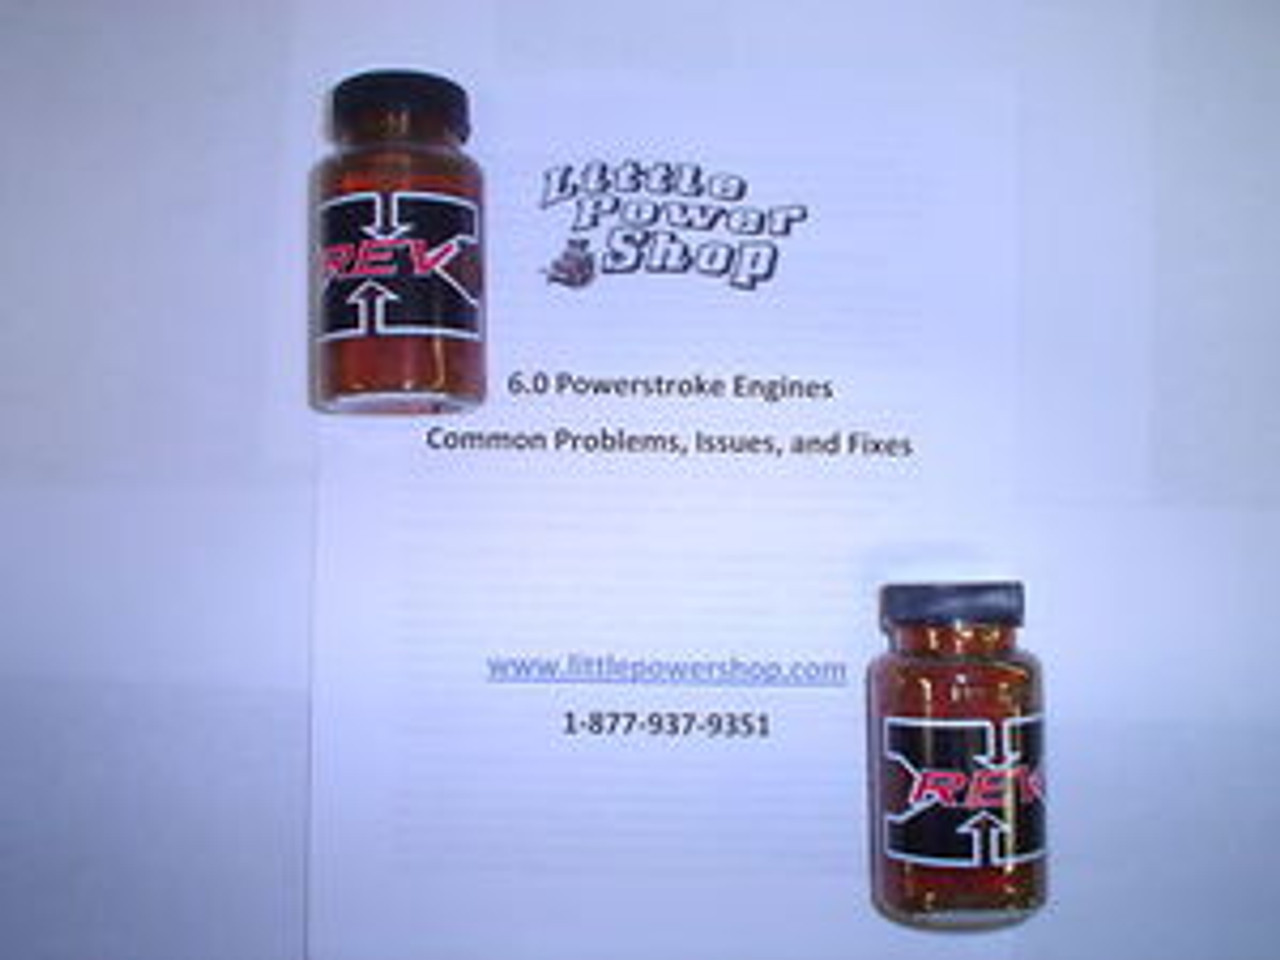 03-07 Ford 6.0 Powerstroke Problems and Fixes Report with Free Rev X Starter Kit